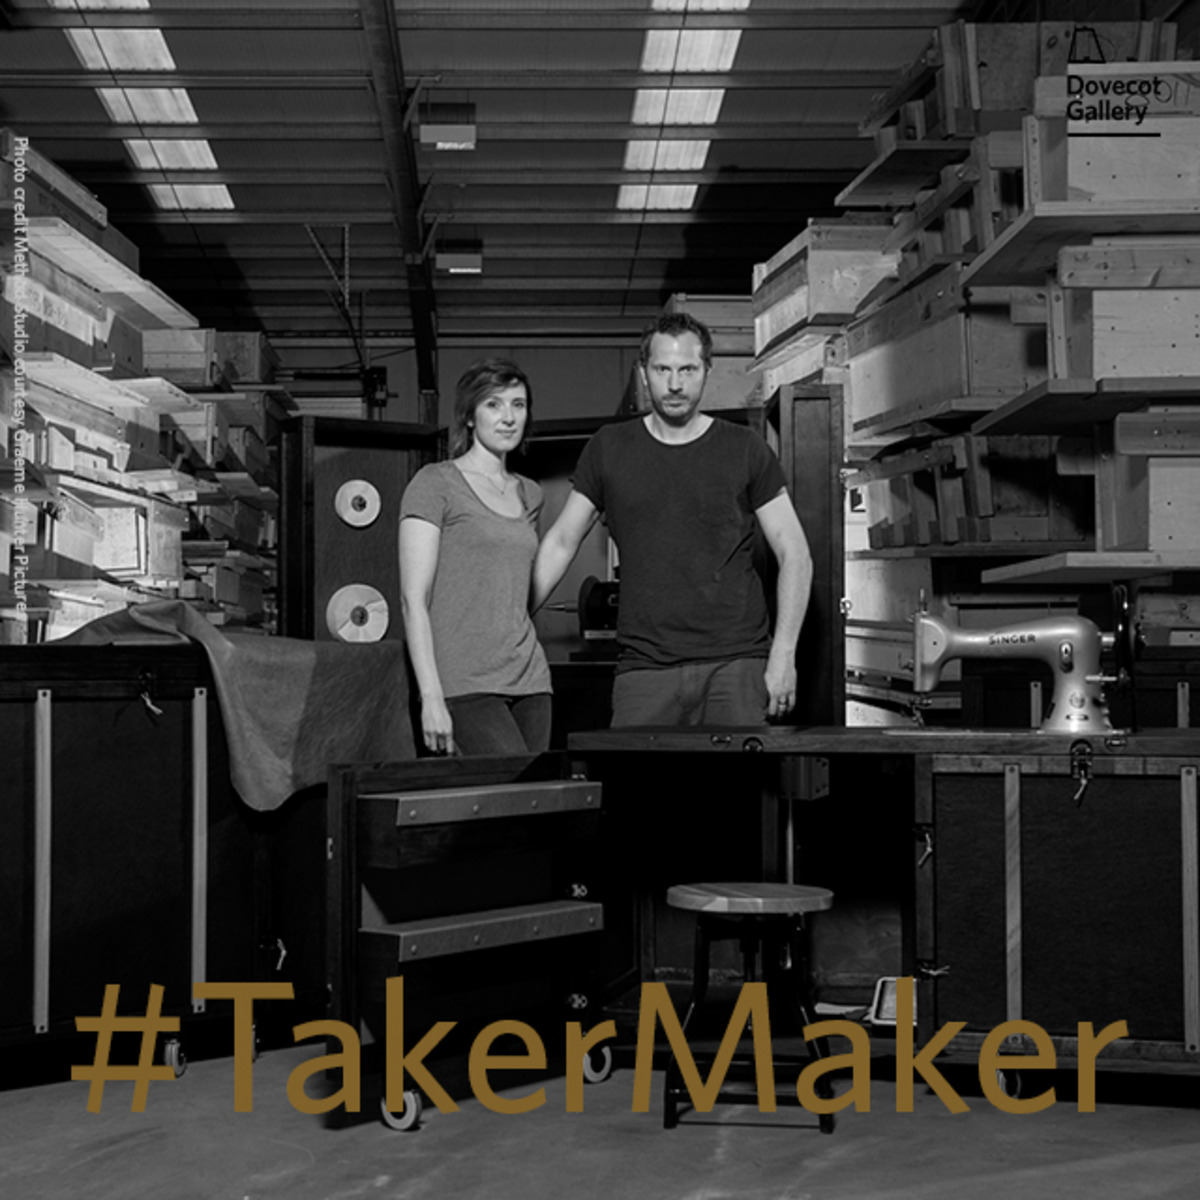 Selected 2015 + Dovecot Selects: Method Studio #TakerMaker Q&A